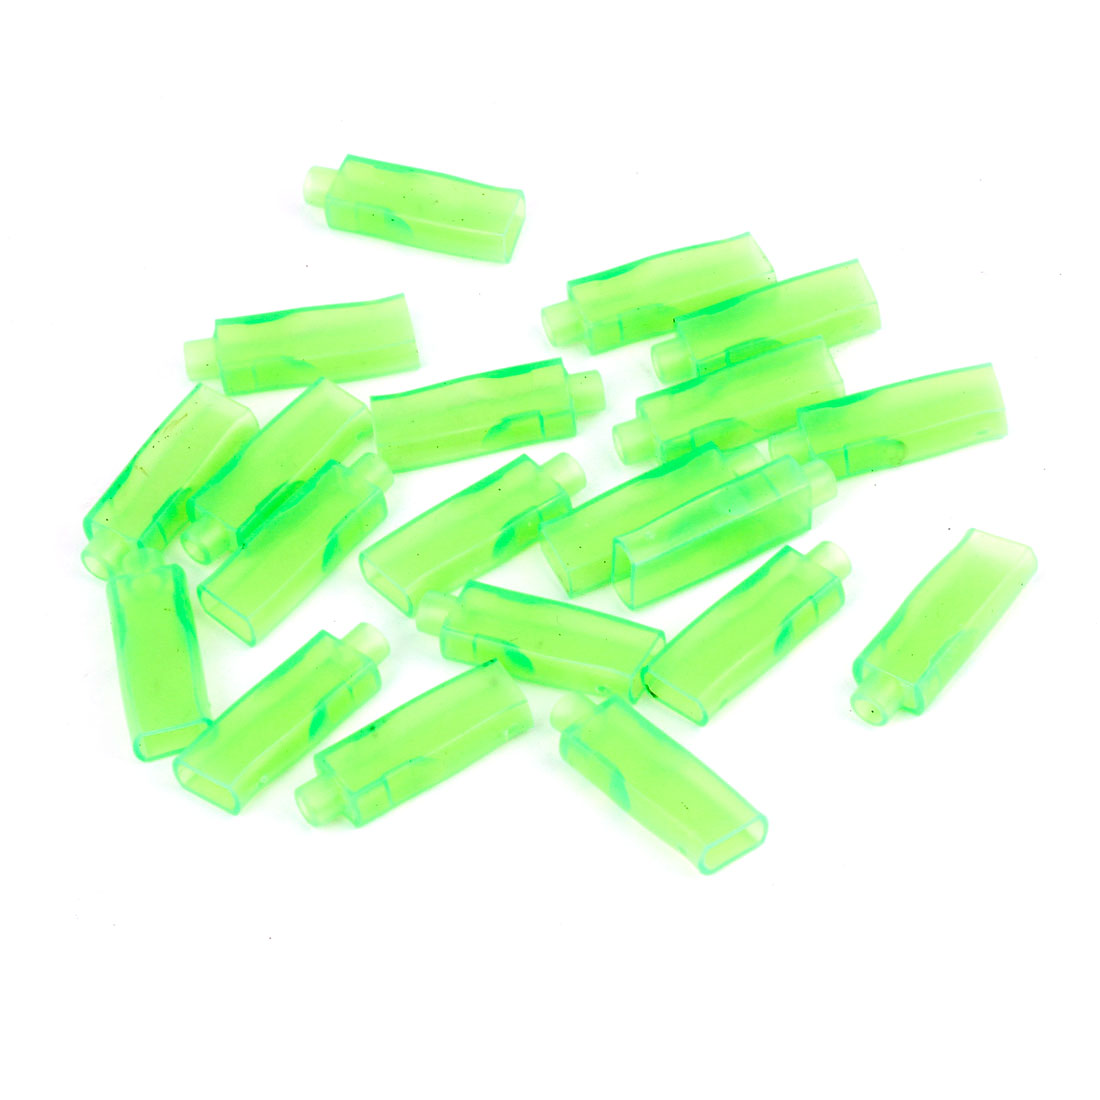 20 Pcs Car Green PVC Connectors 6.3mm Double Female Terminal Sleeves